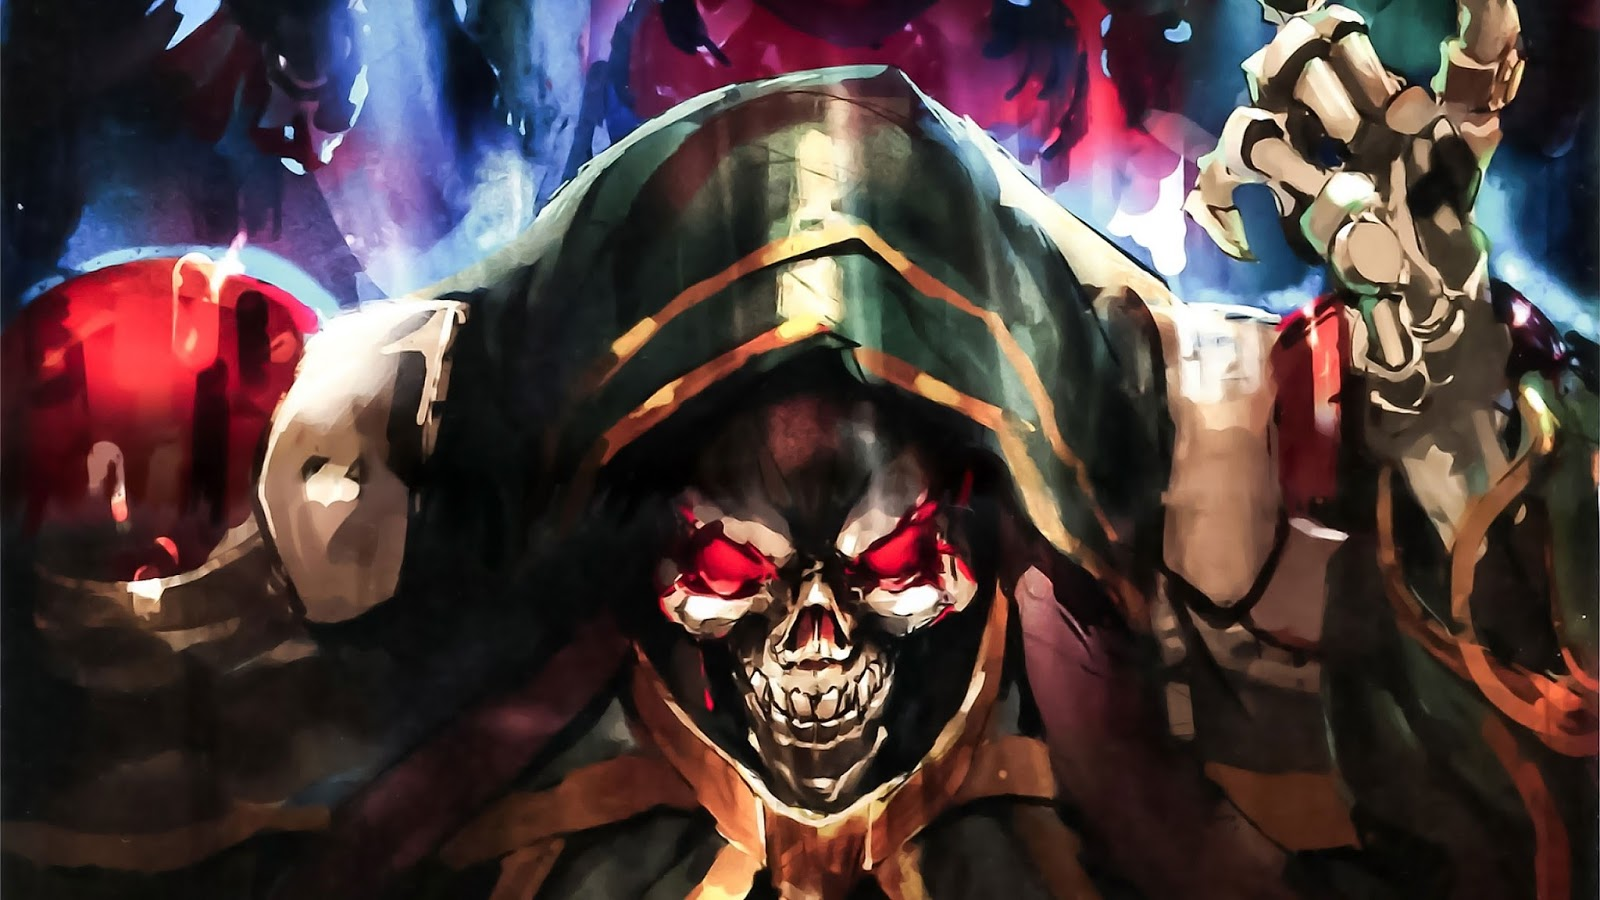 Overlord Anime Wallpaper 1920×1080